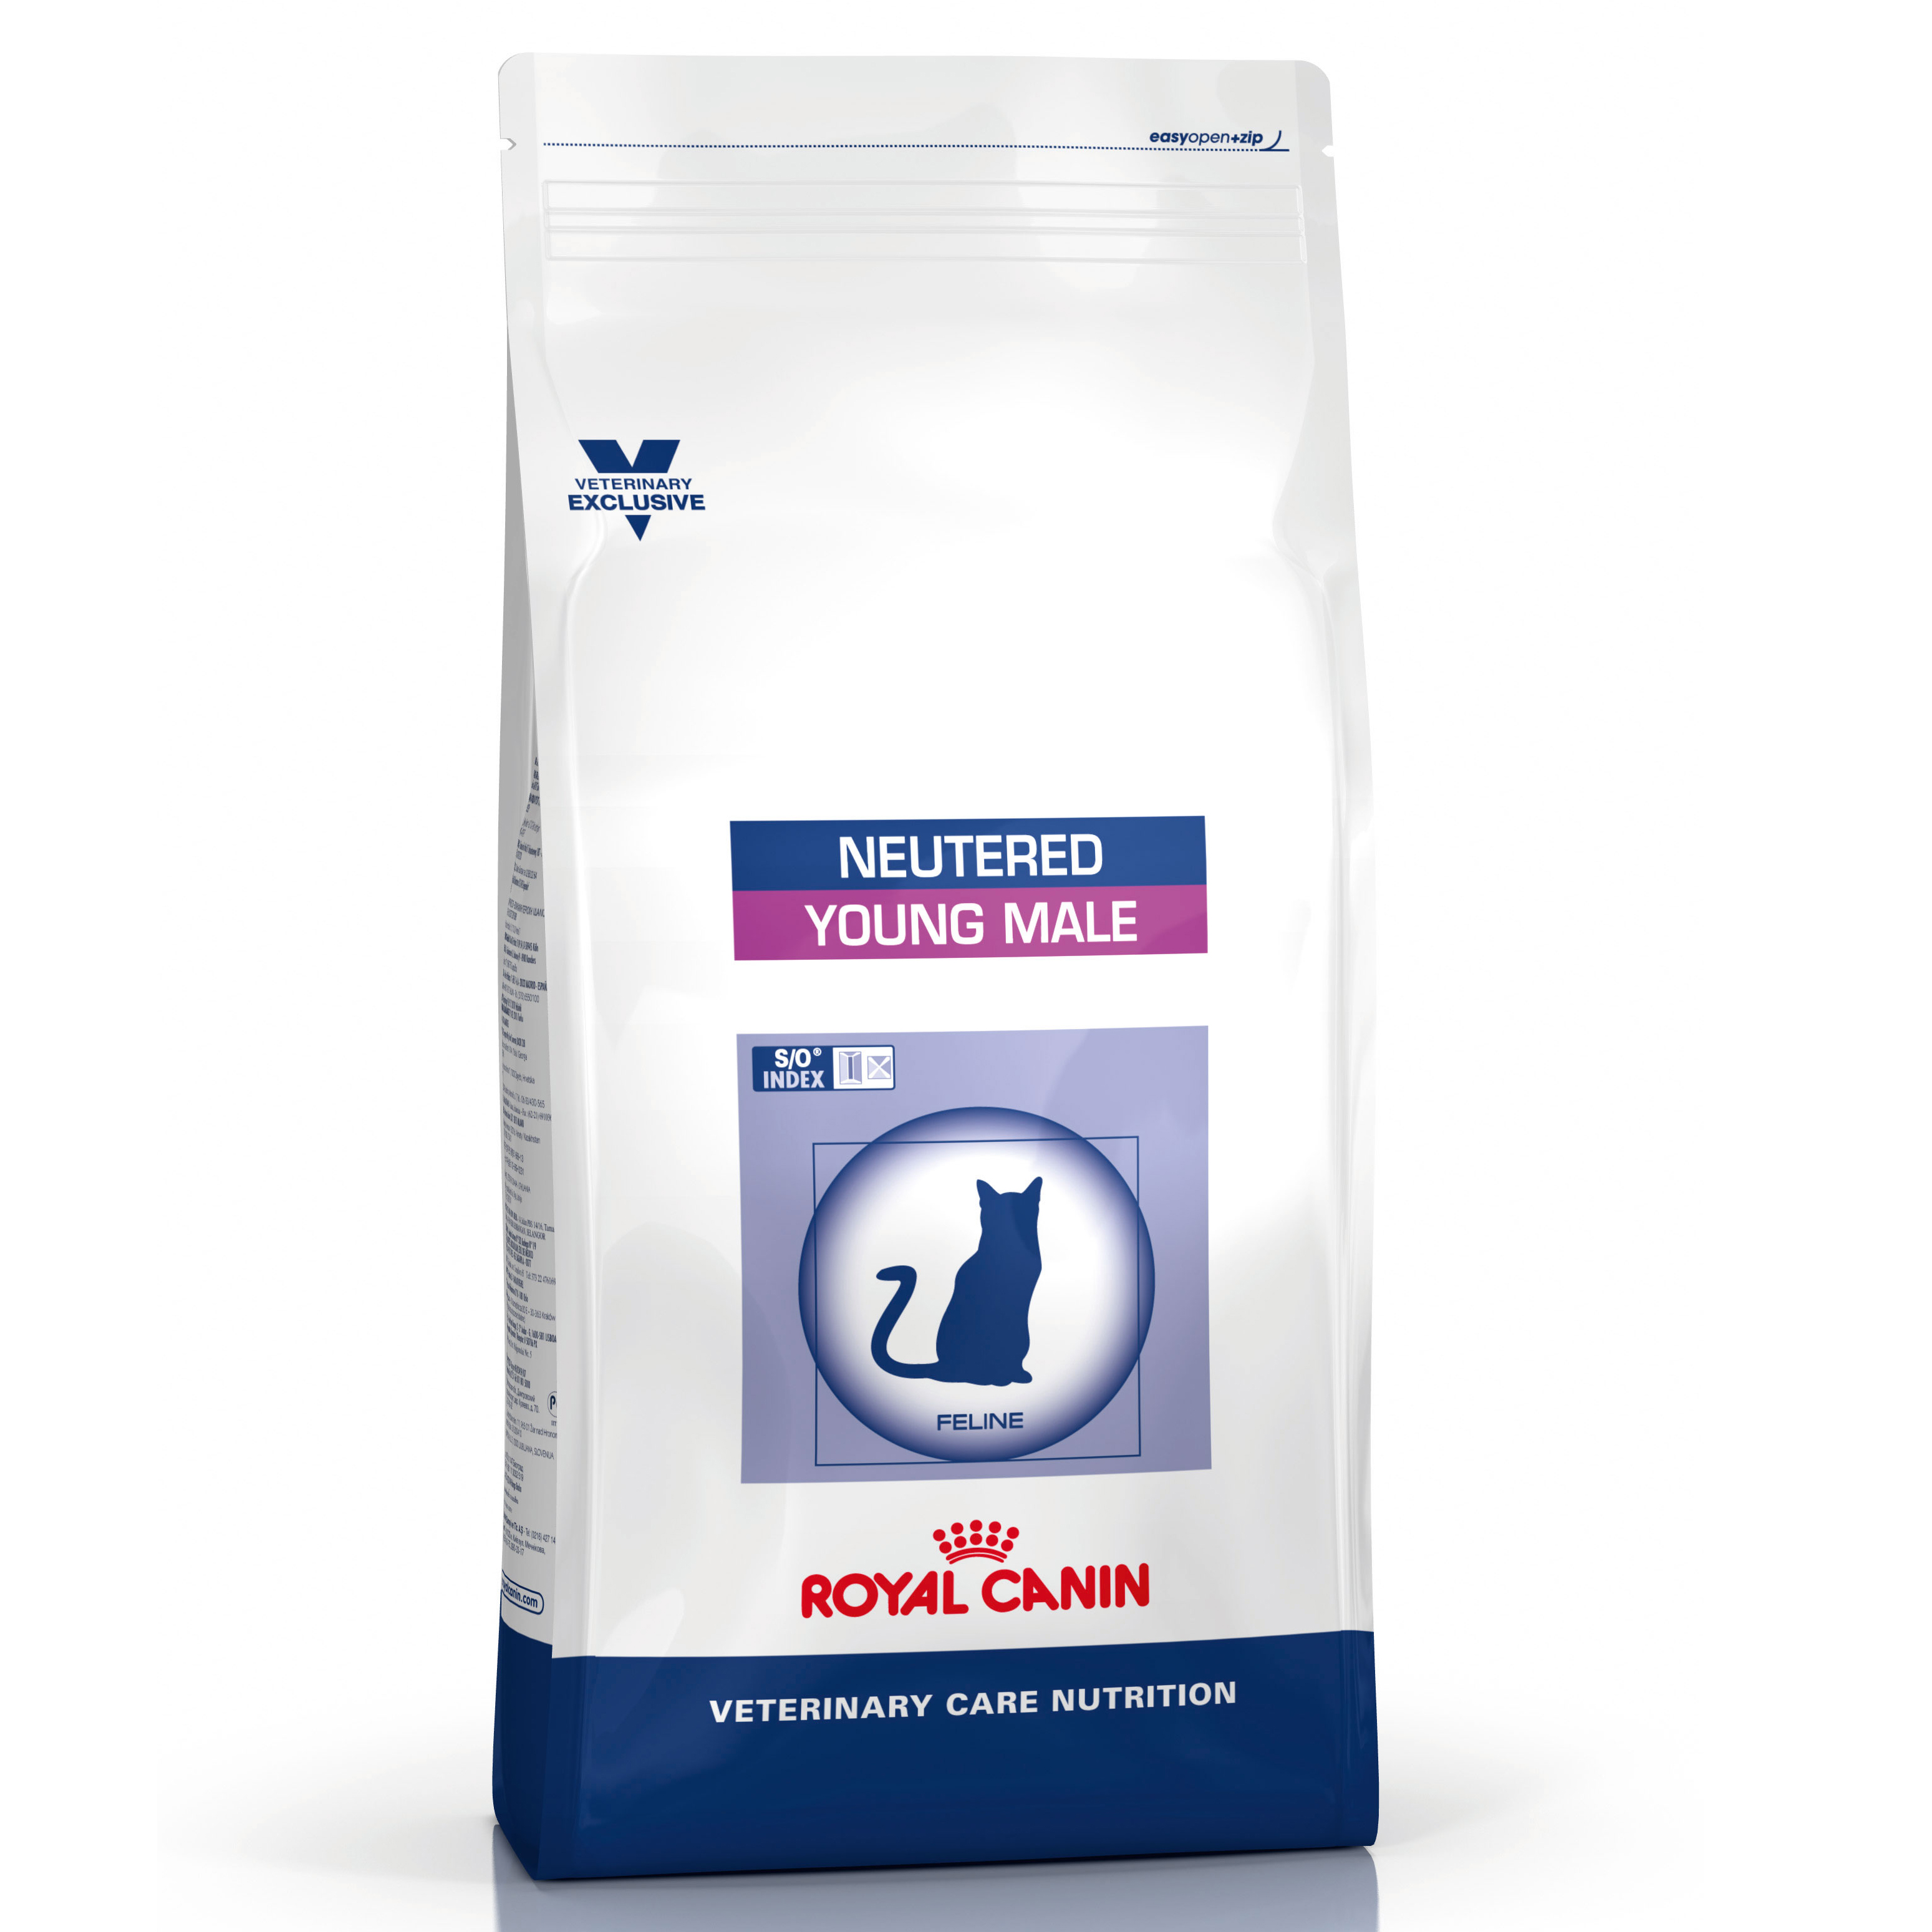 Royal Canin Vet Care Nutrition Neutered Young Male Cat Dry 3.5kg on Animed Direct